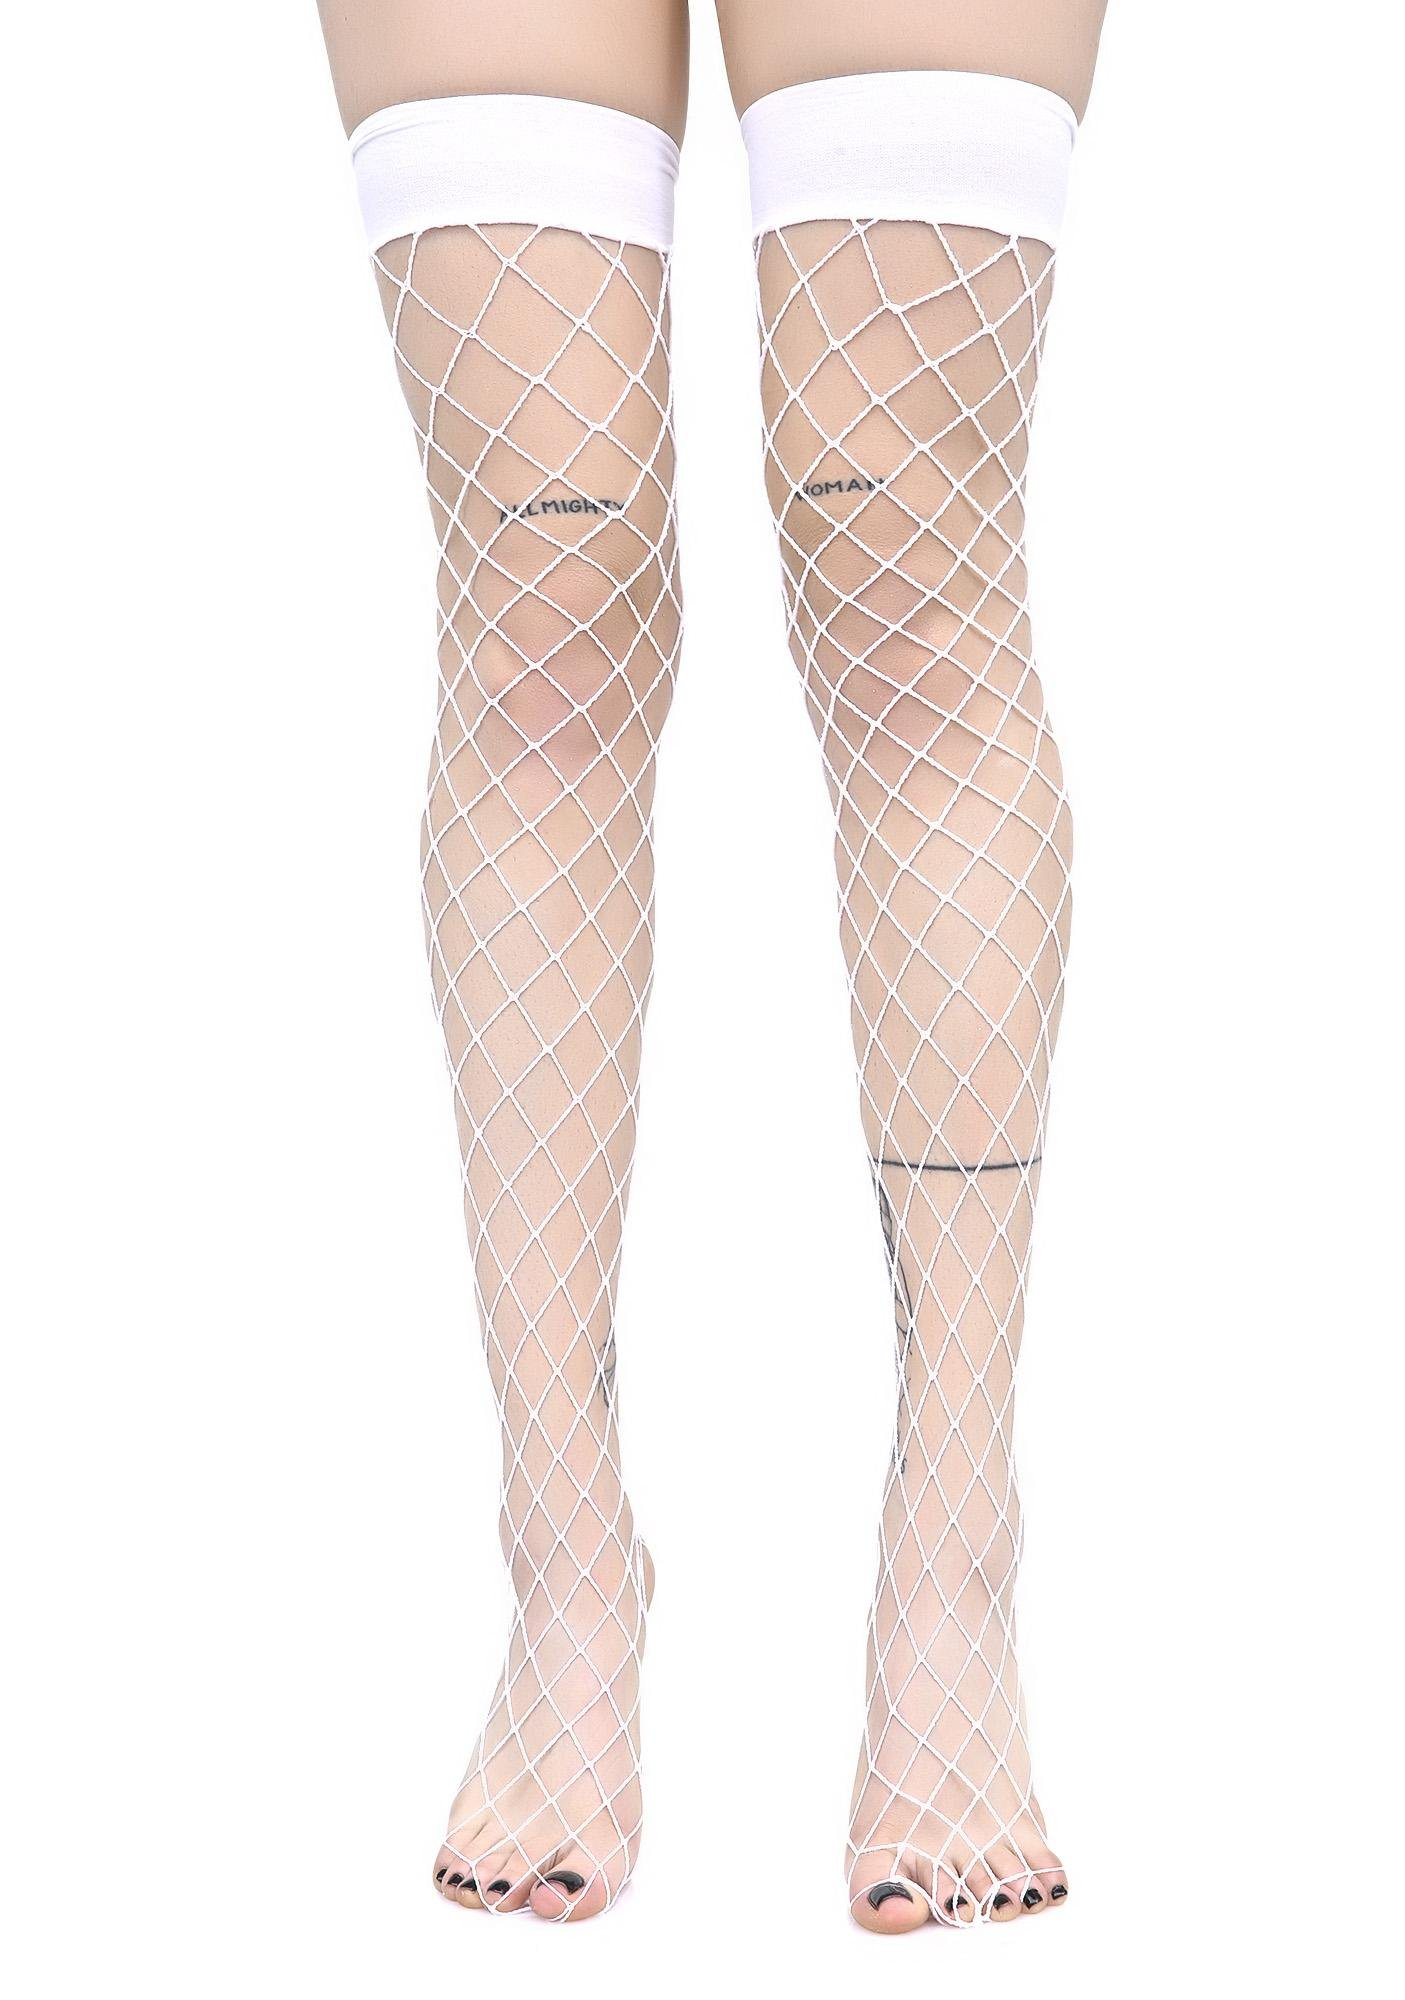 Worship Me White Fence Net Thigh Highs